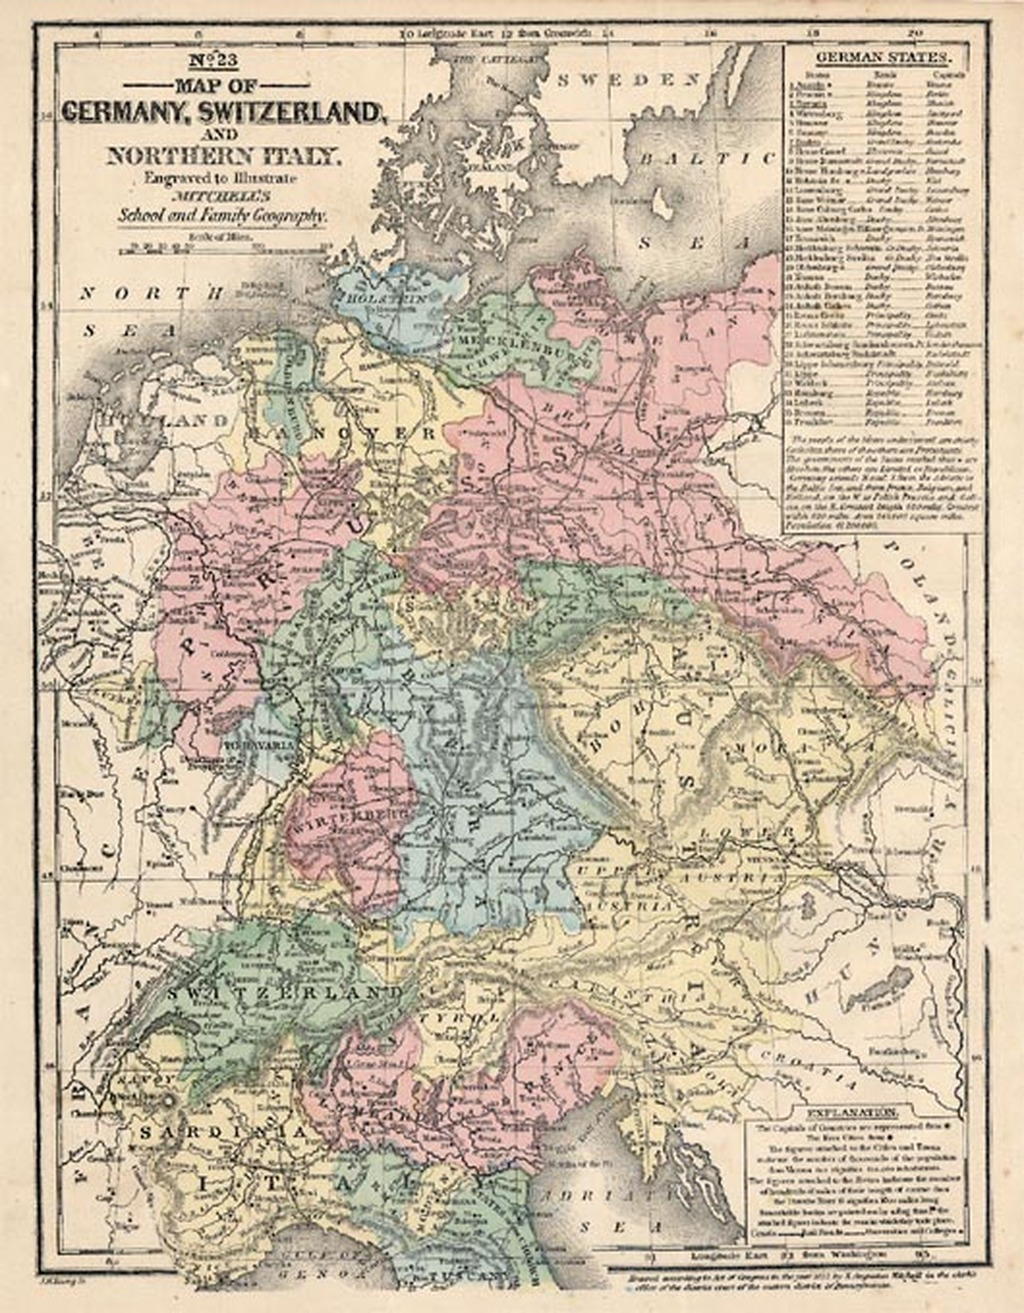 Map Of Germany And Switzerland.Map Of Germany Switzerland And Northern Italy Barry Lawrence